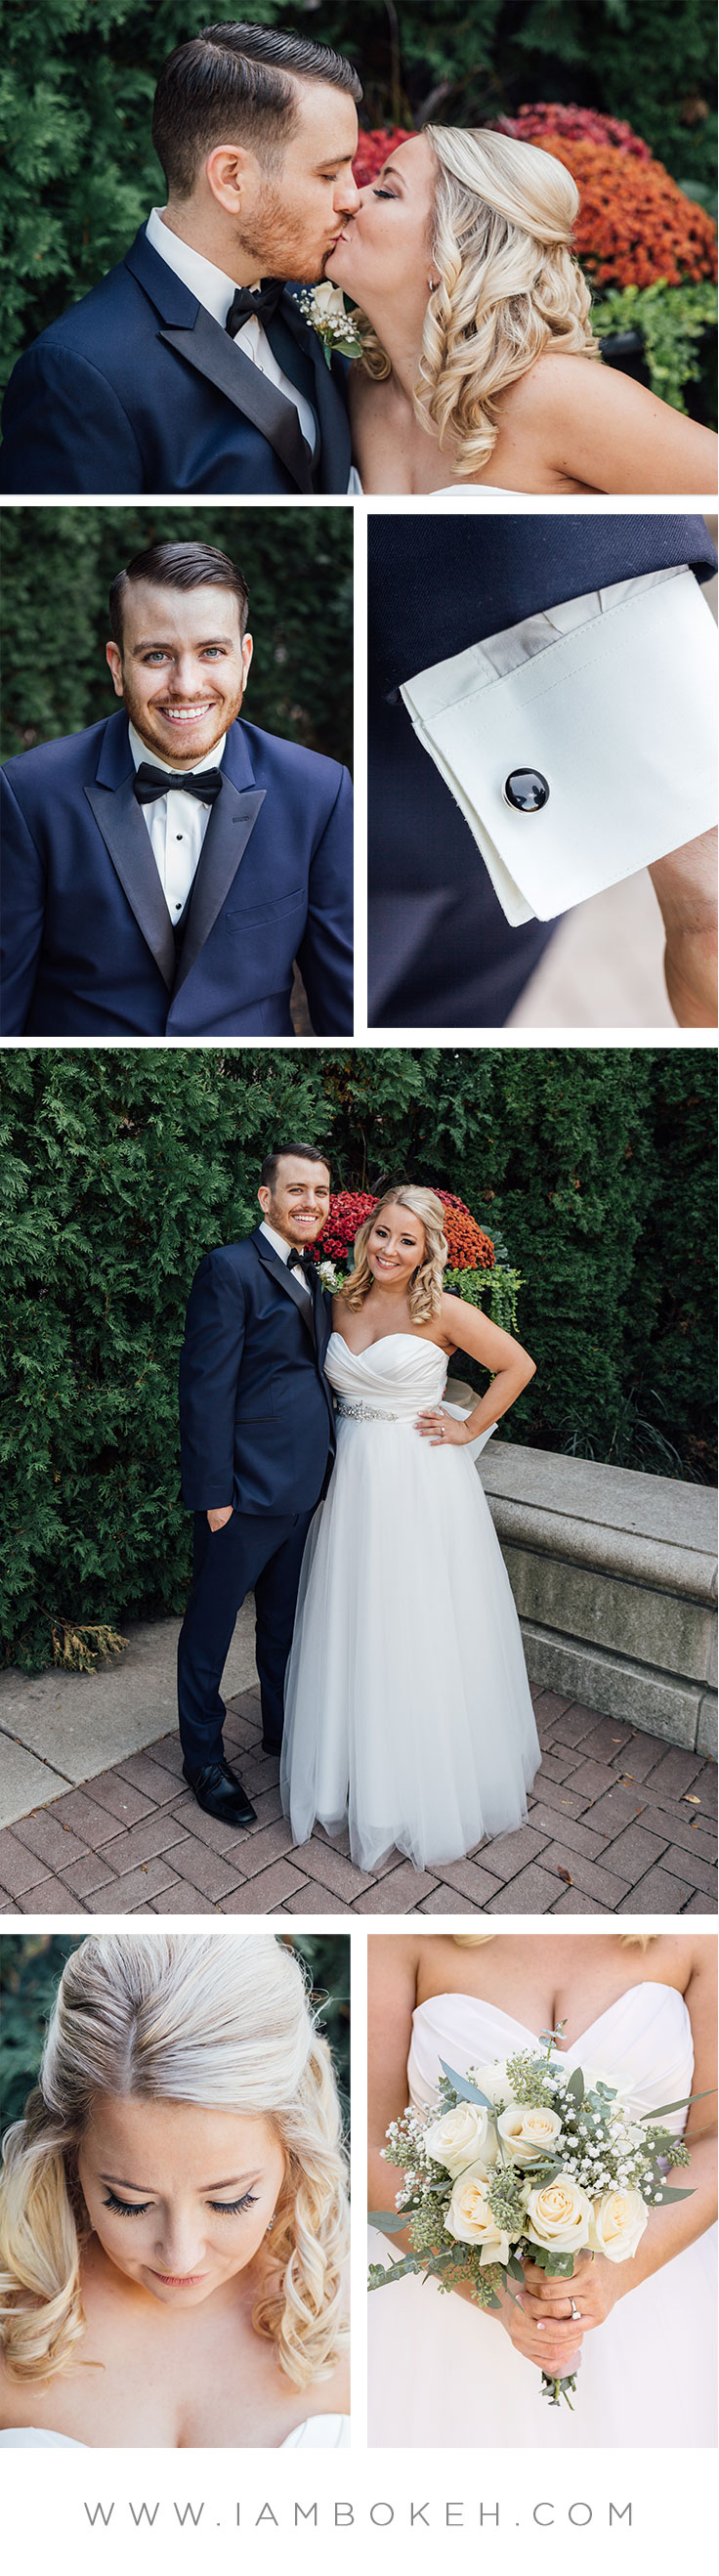 Bokéh Studios | Palatine Wedding at The Cotillion Banquets: Craig & Sarah